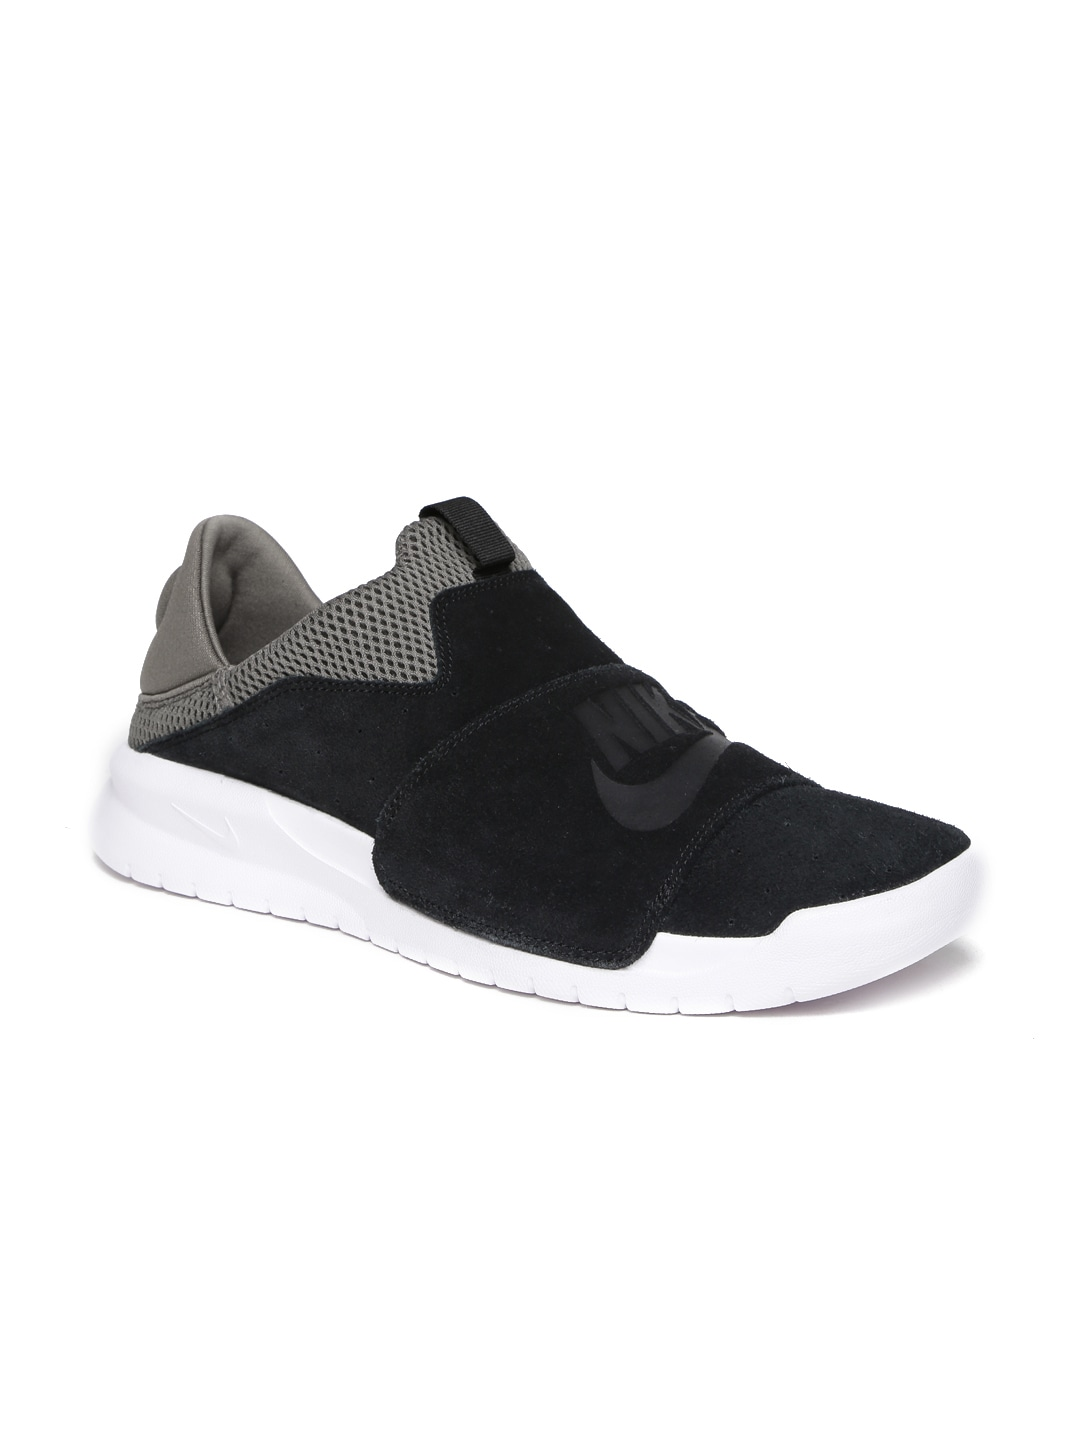 buy nike casual shoes online